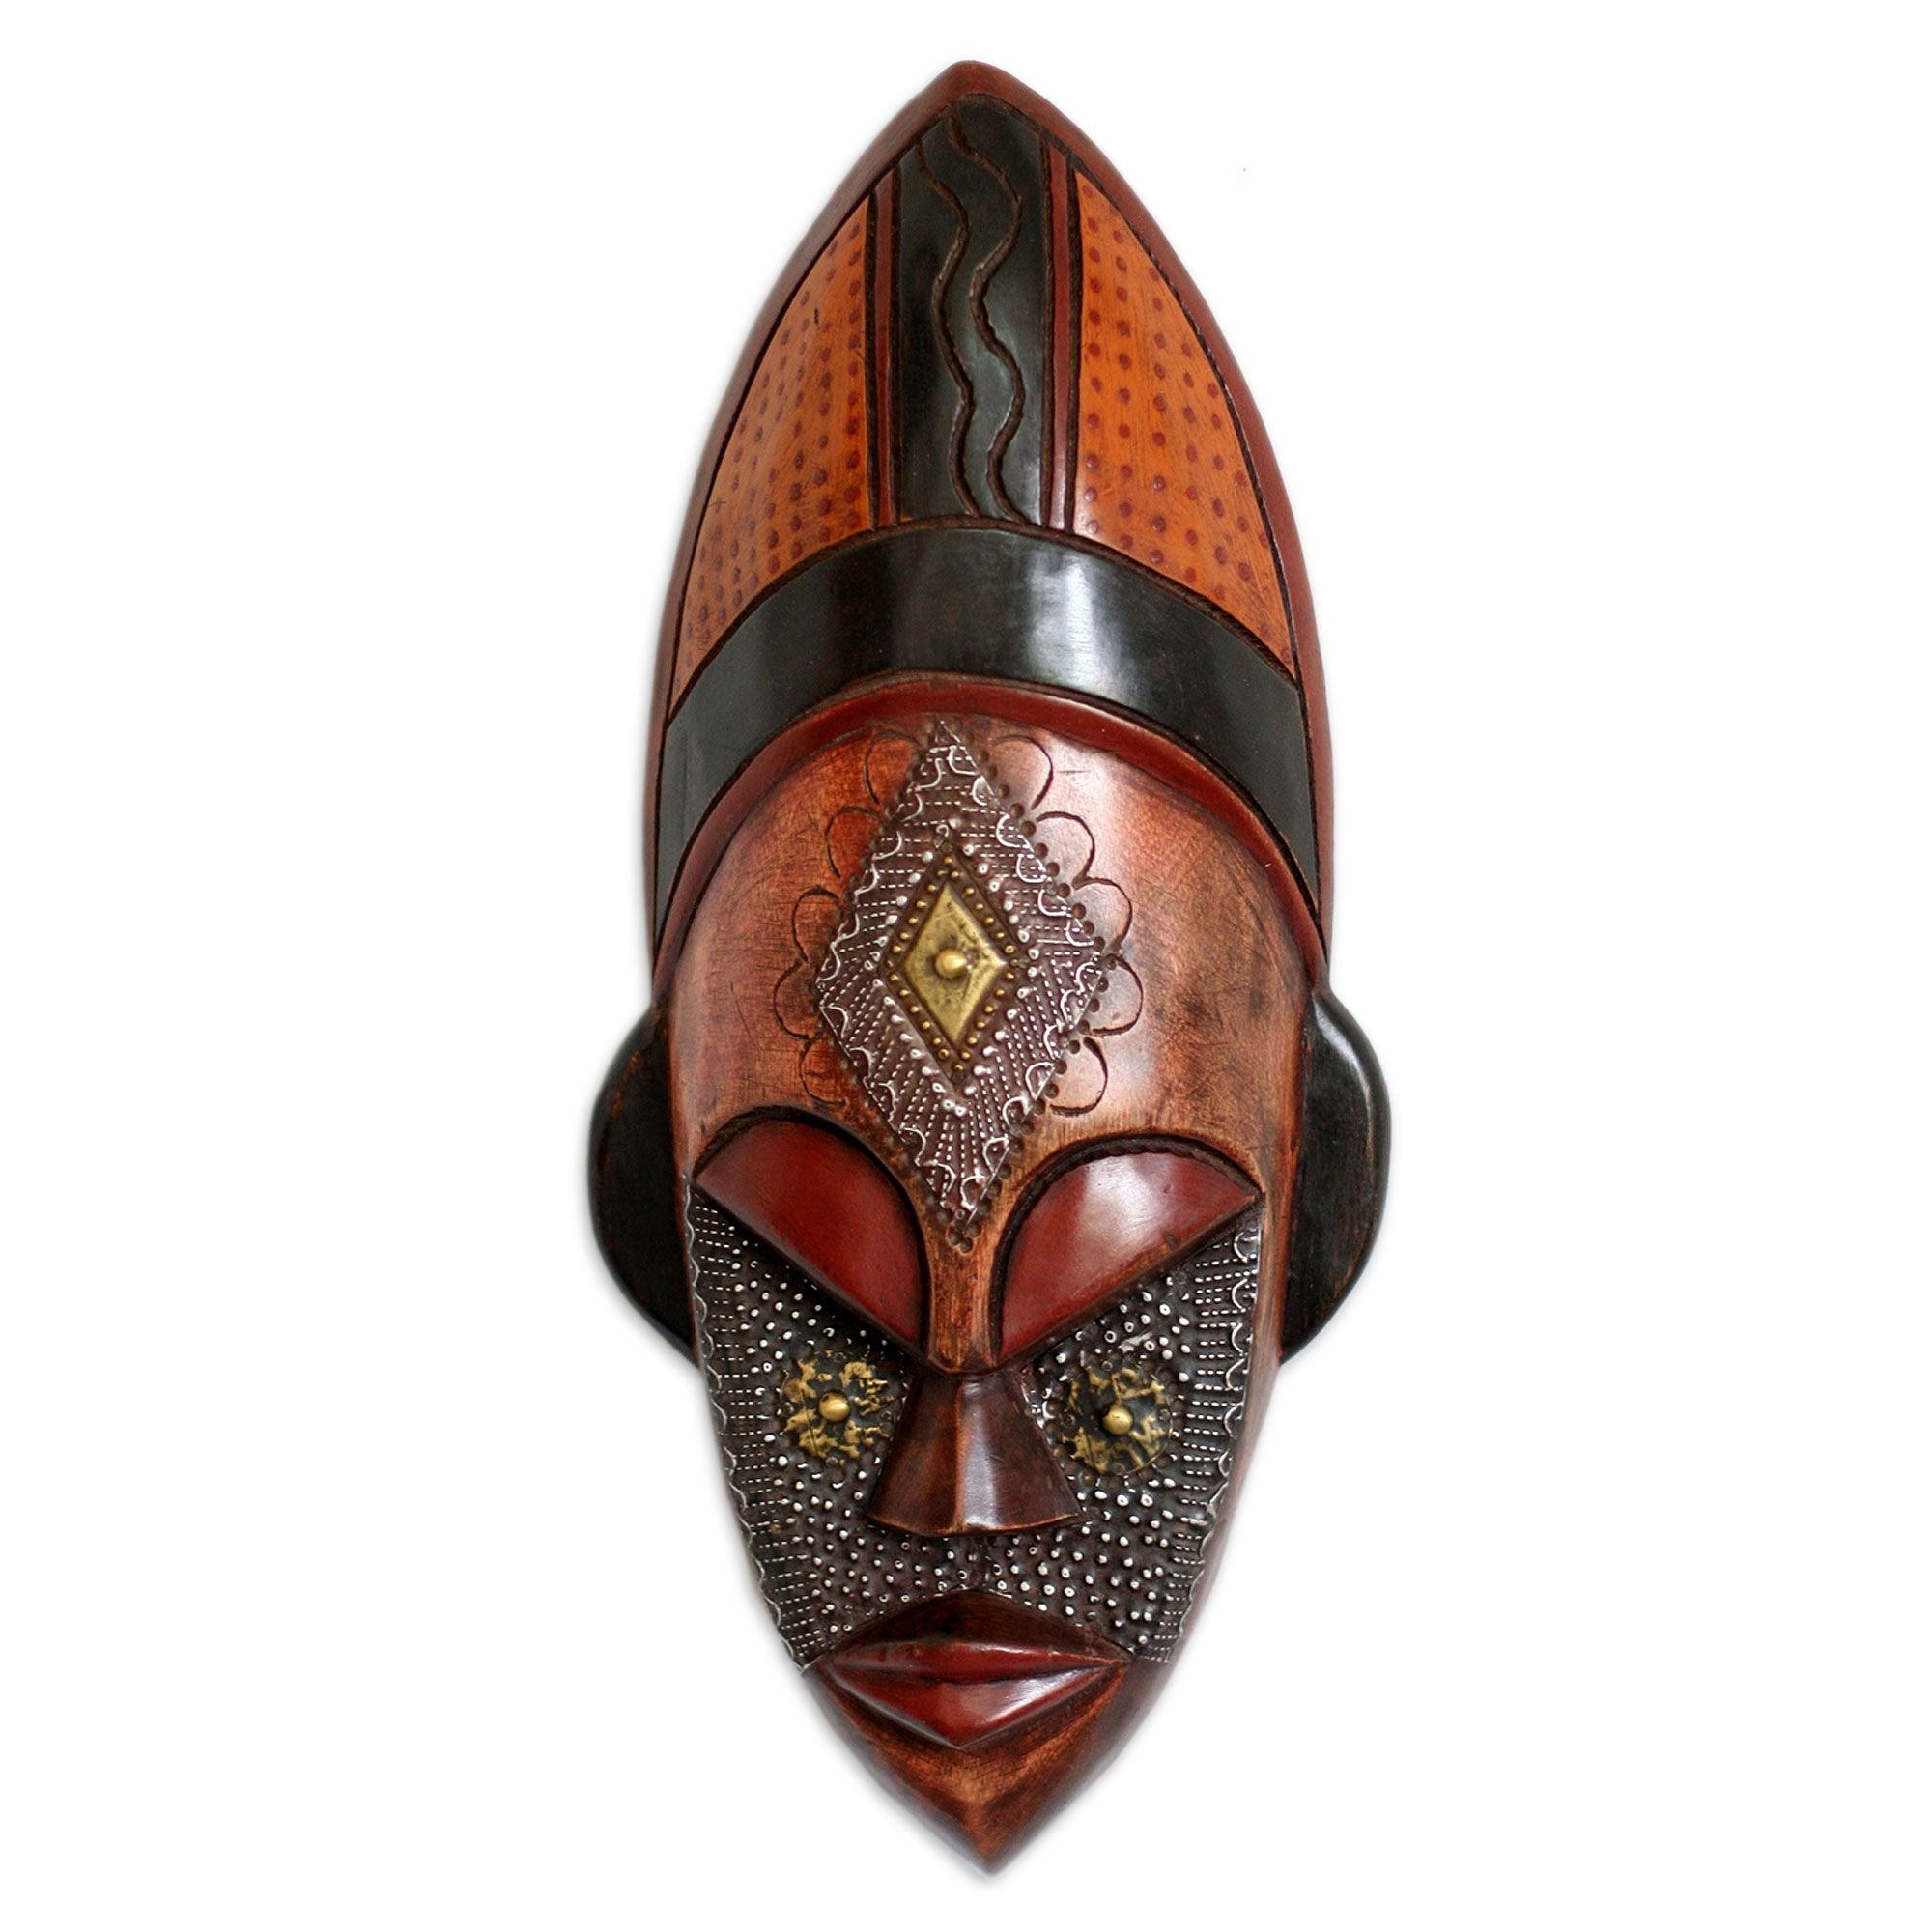 Hand Crafted Ivory Coast Mask, 'dan Beauty' (View 1 of 15)